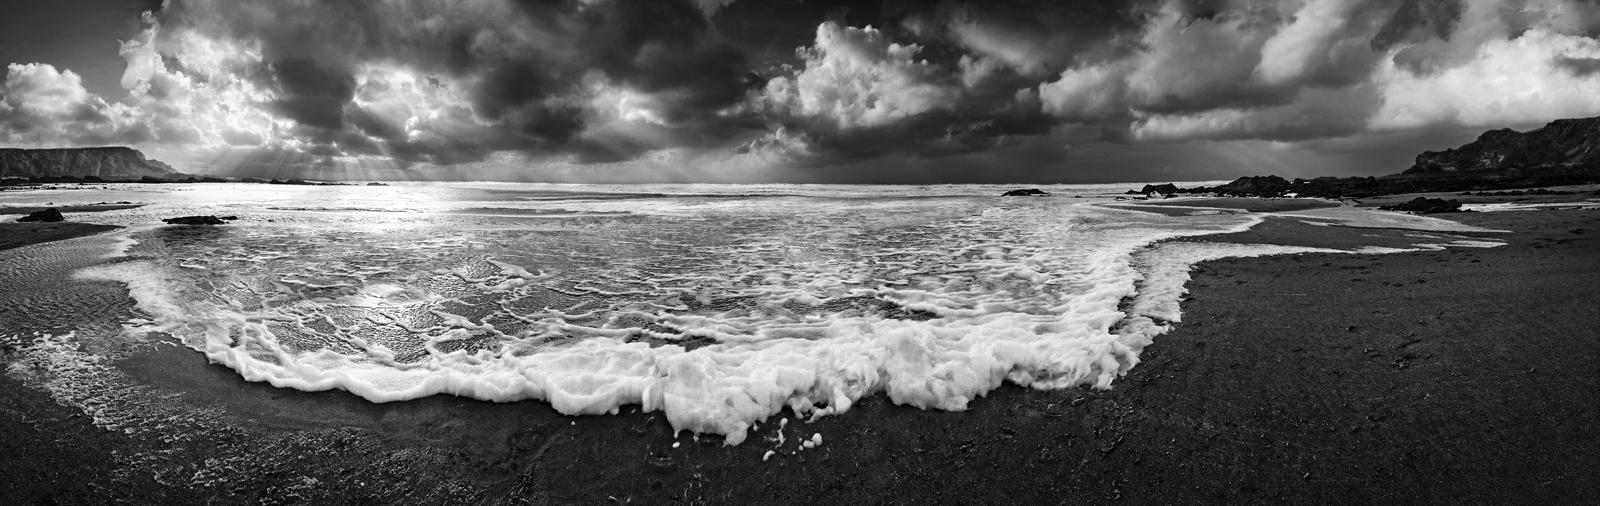 Jeannine King_In the wake of the Storm